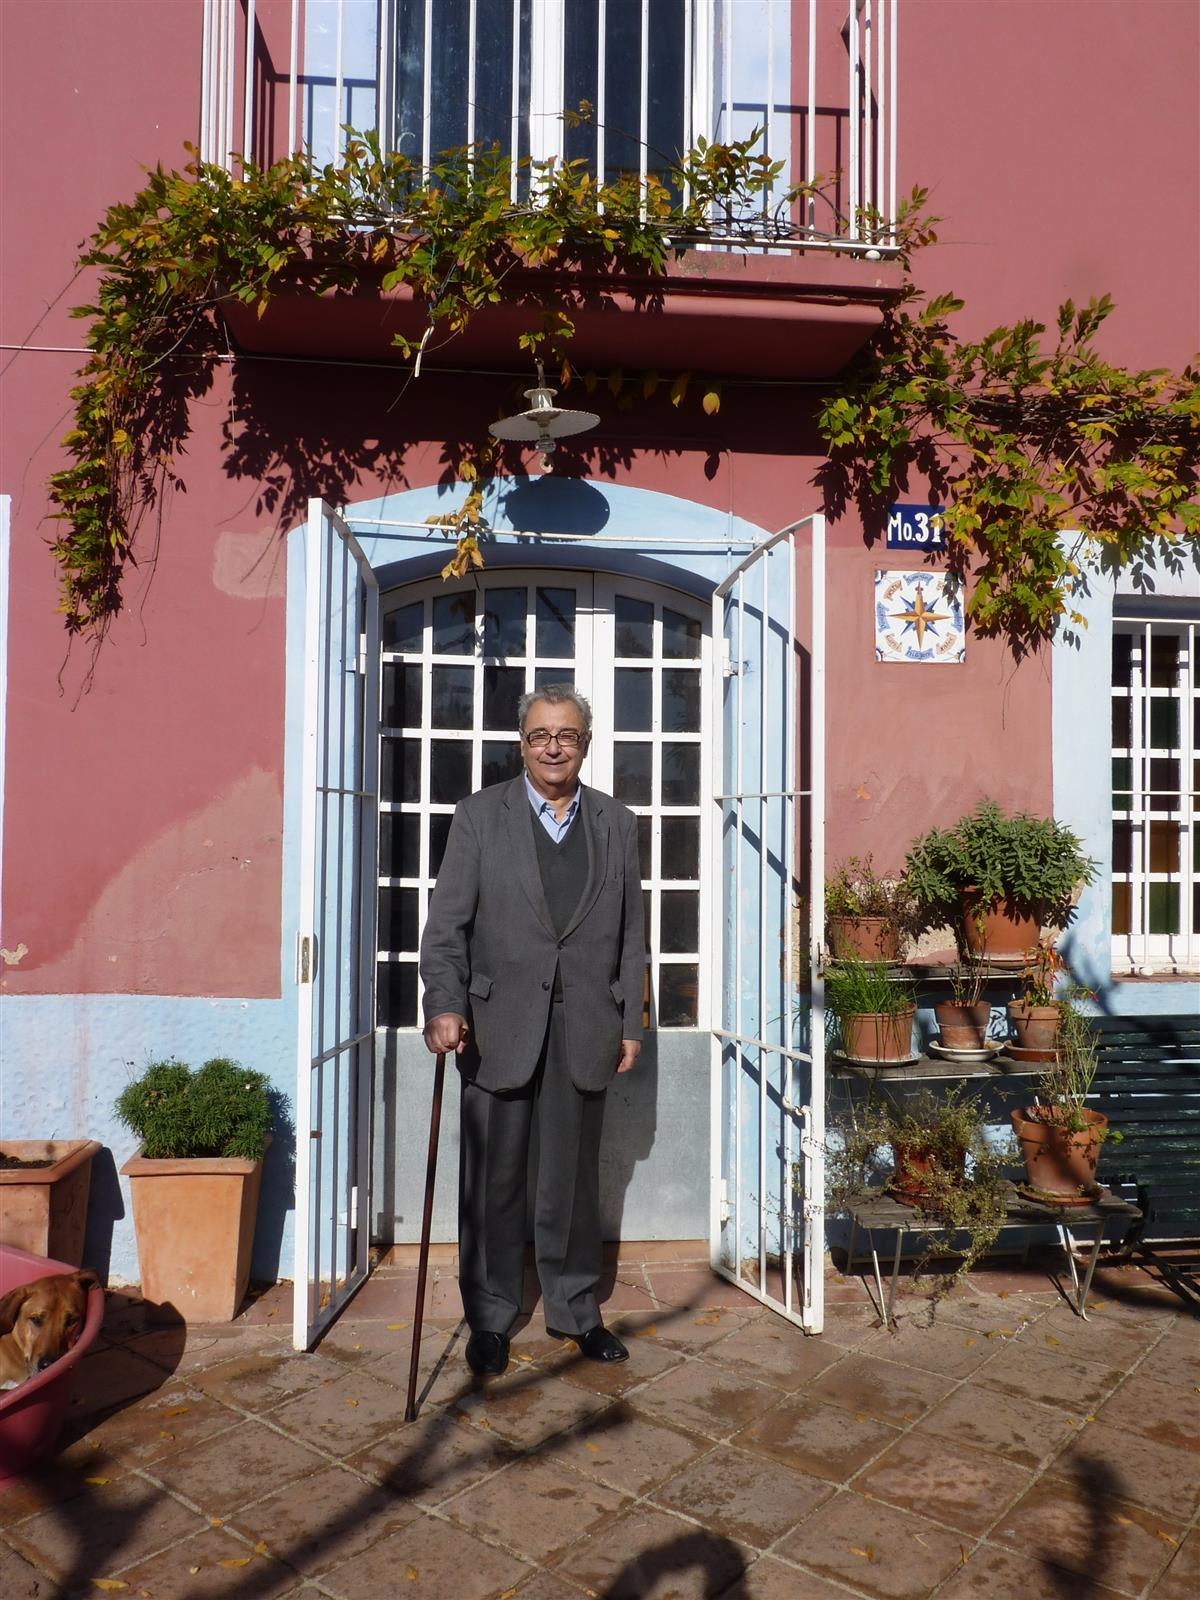 Joan Guinjoan revisiting his childhood home!